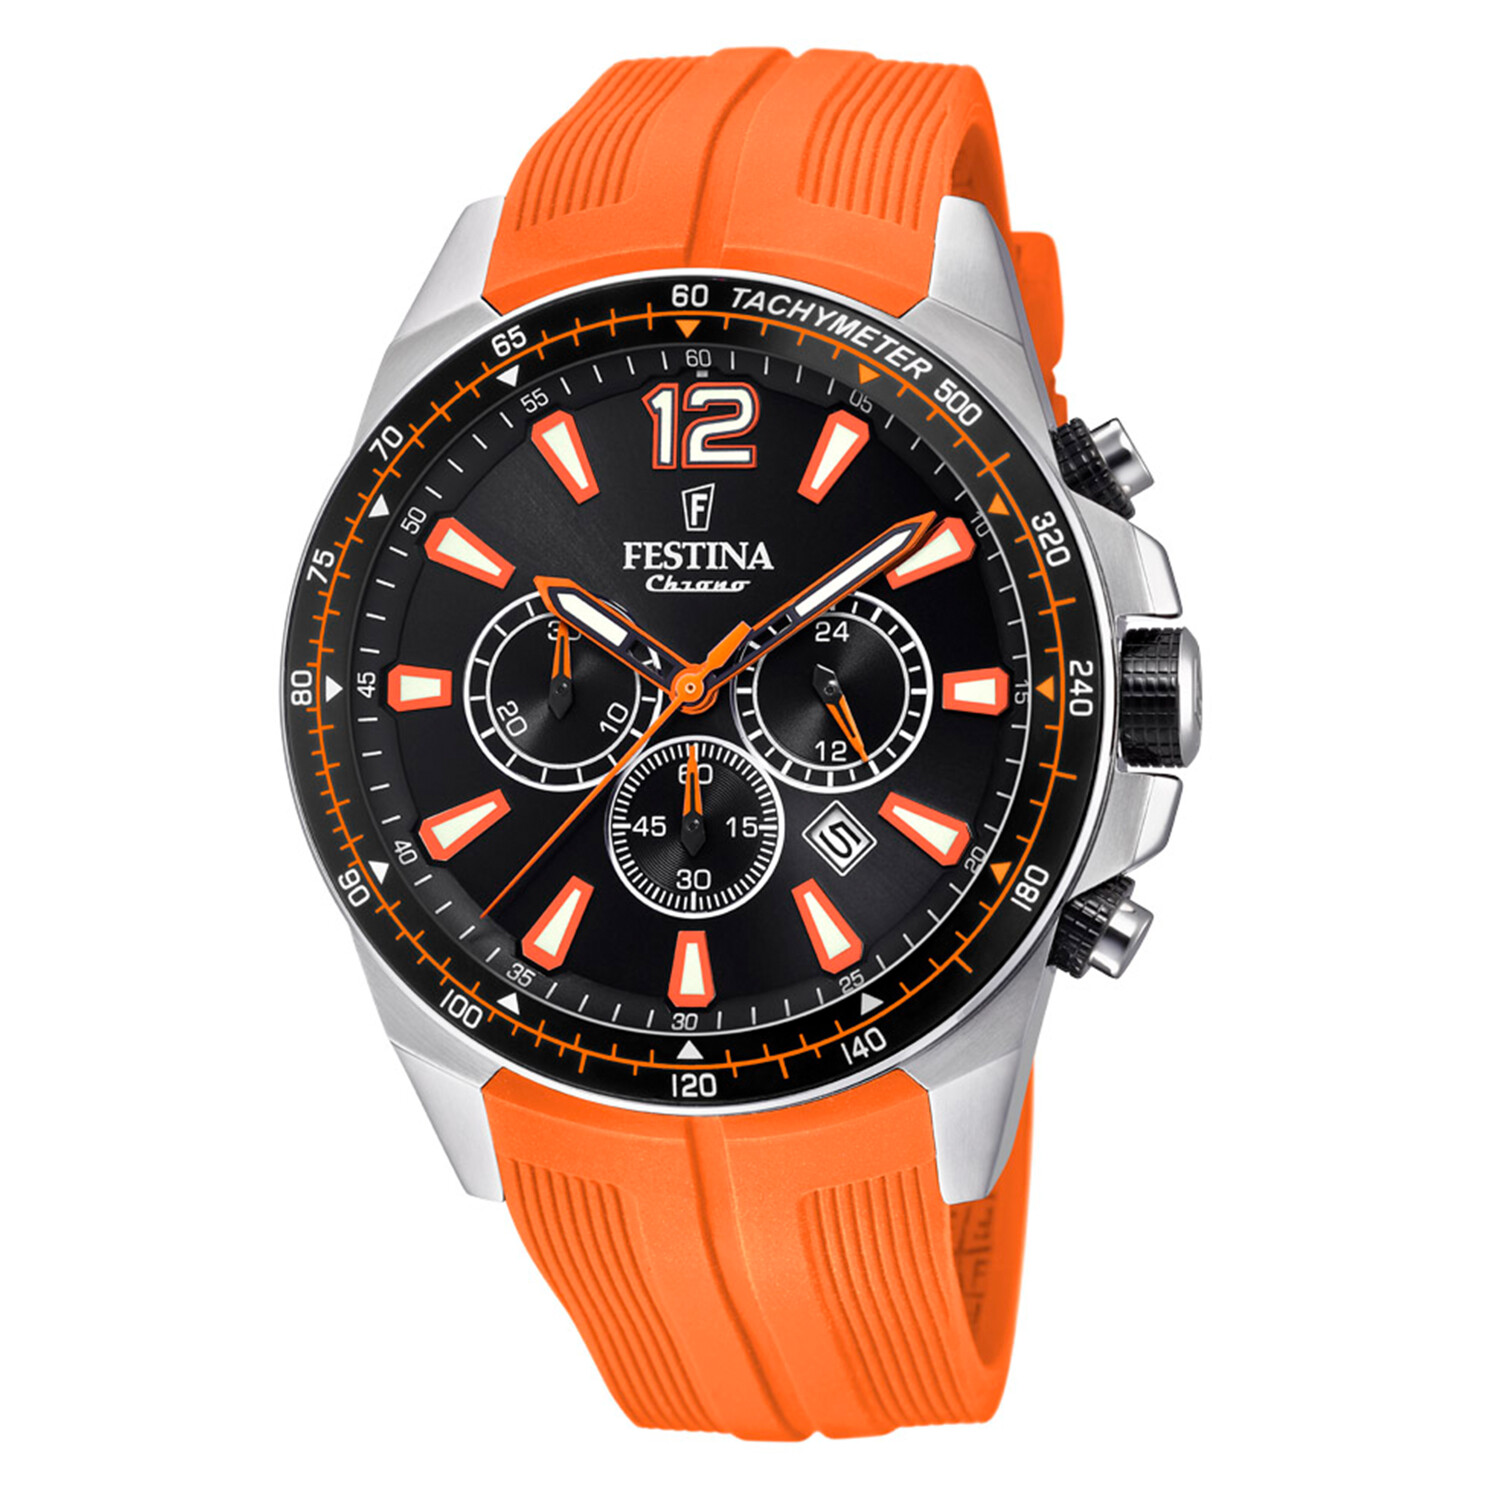 Festina Men's The Originals F20376-5F37 Orange Silicone Quartz Fashion Watch